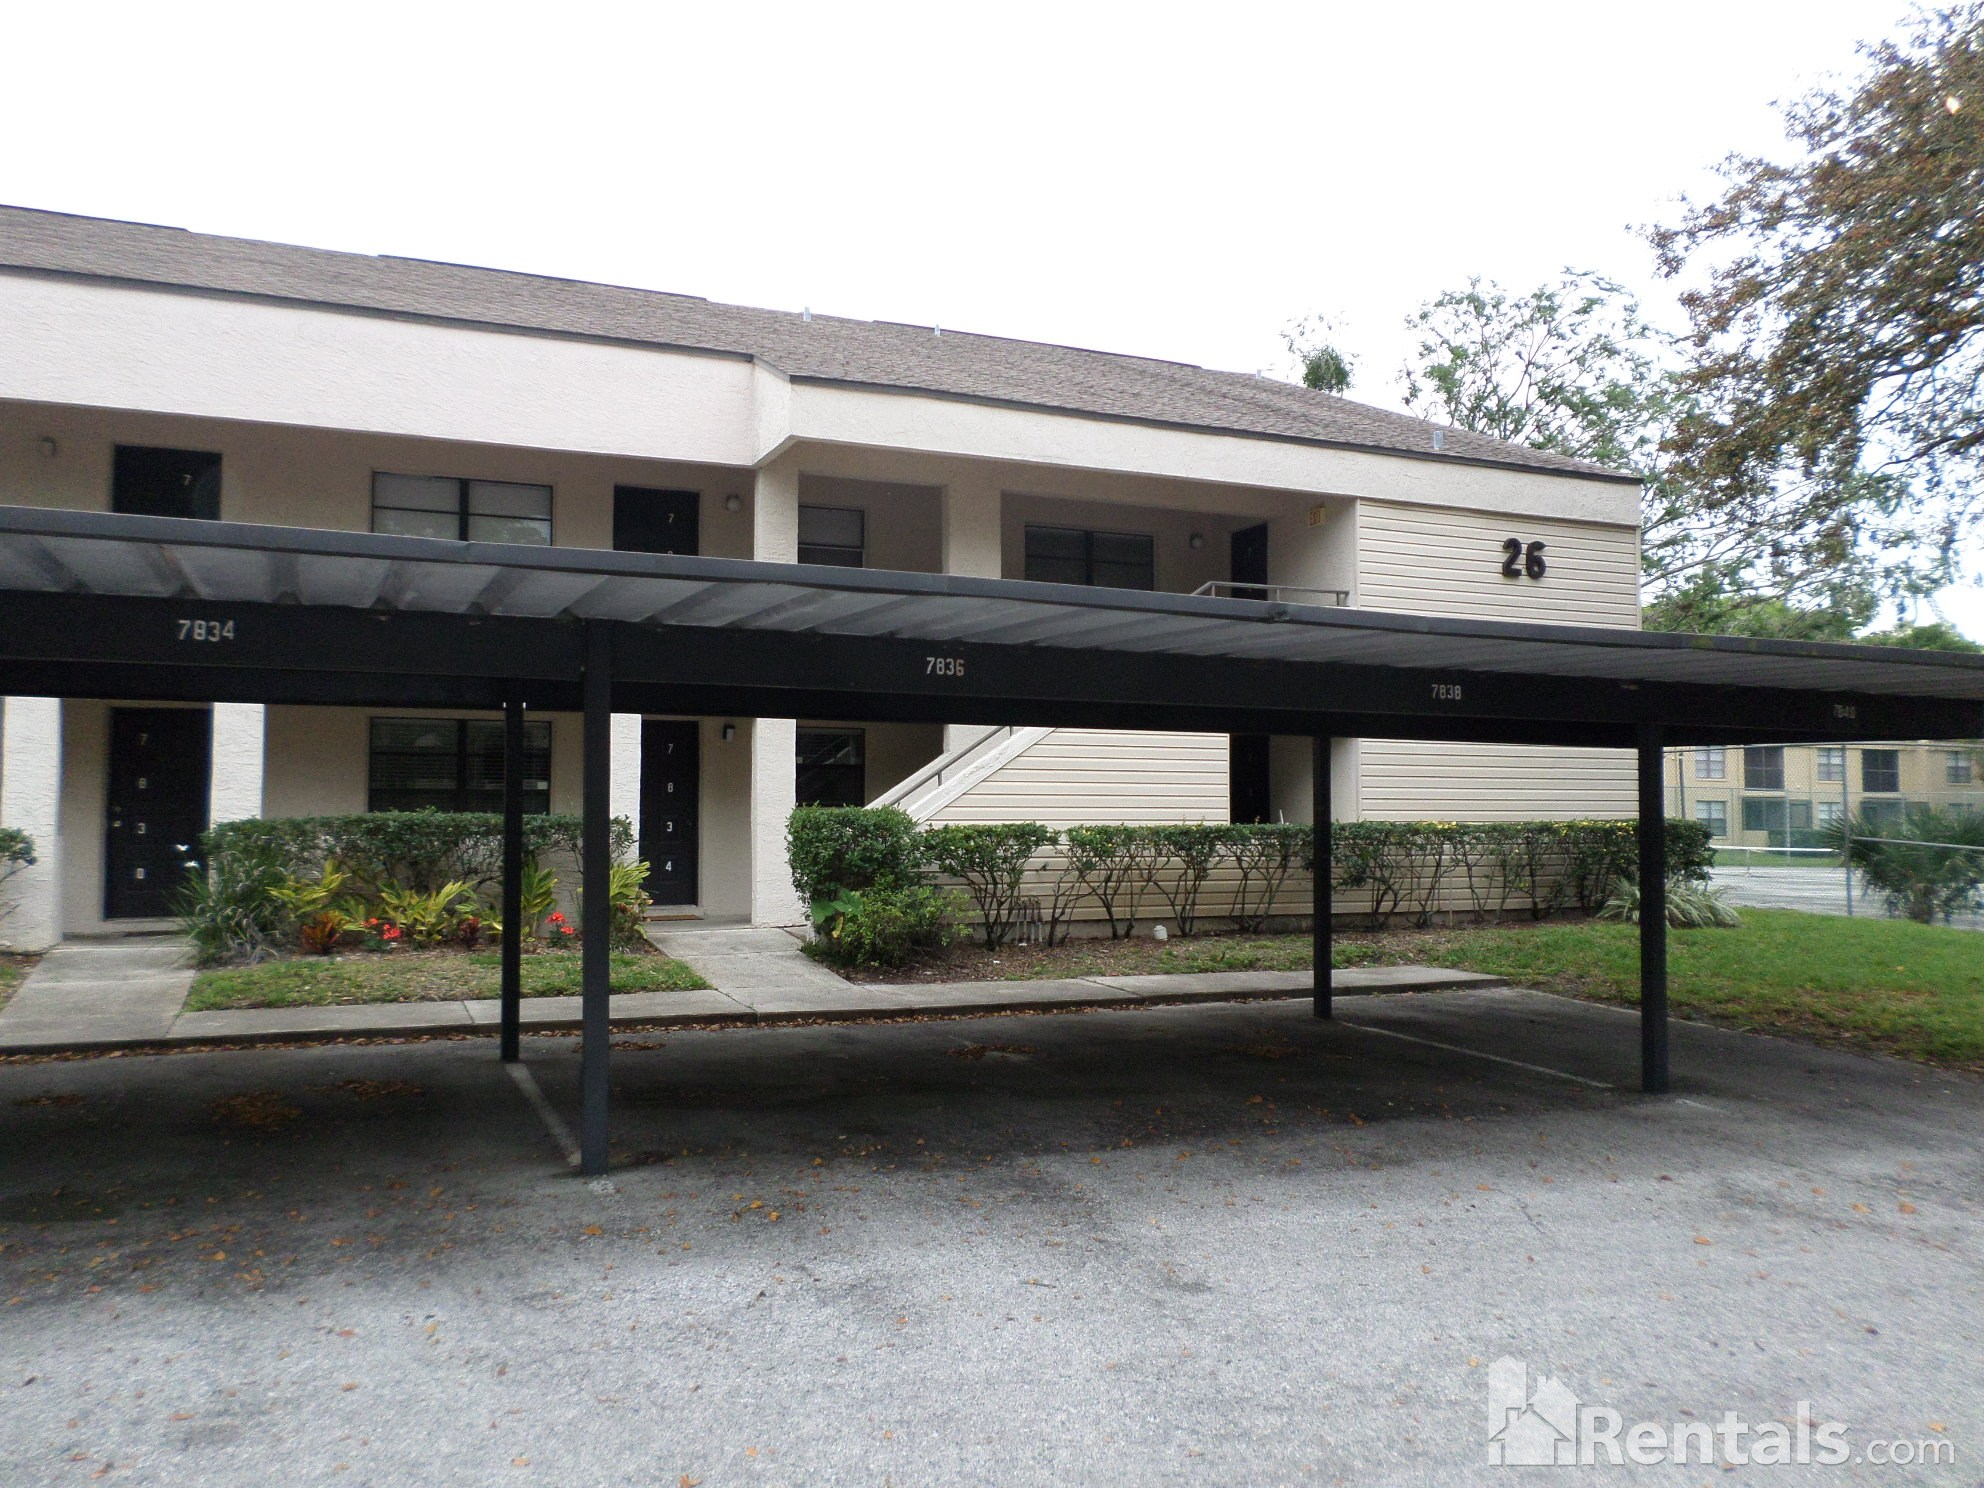 Condo for Rent in River Oaks Condominium